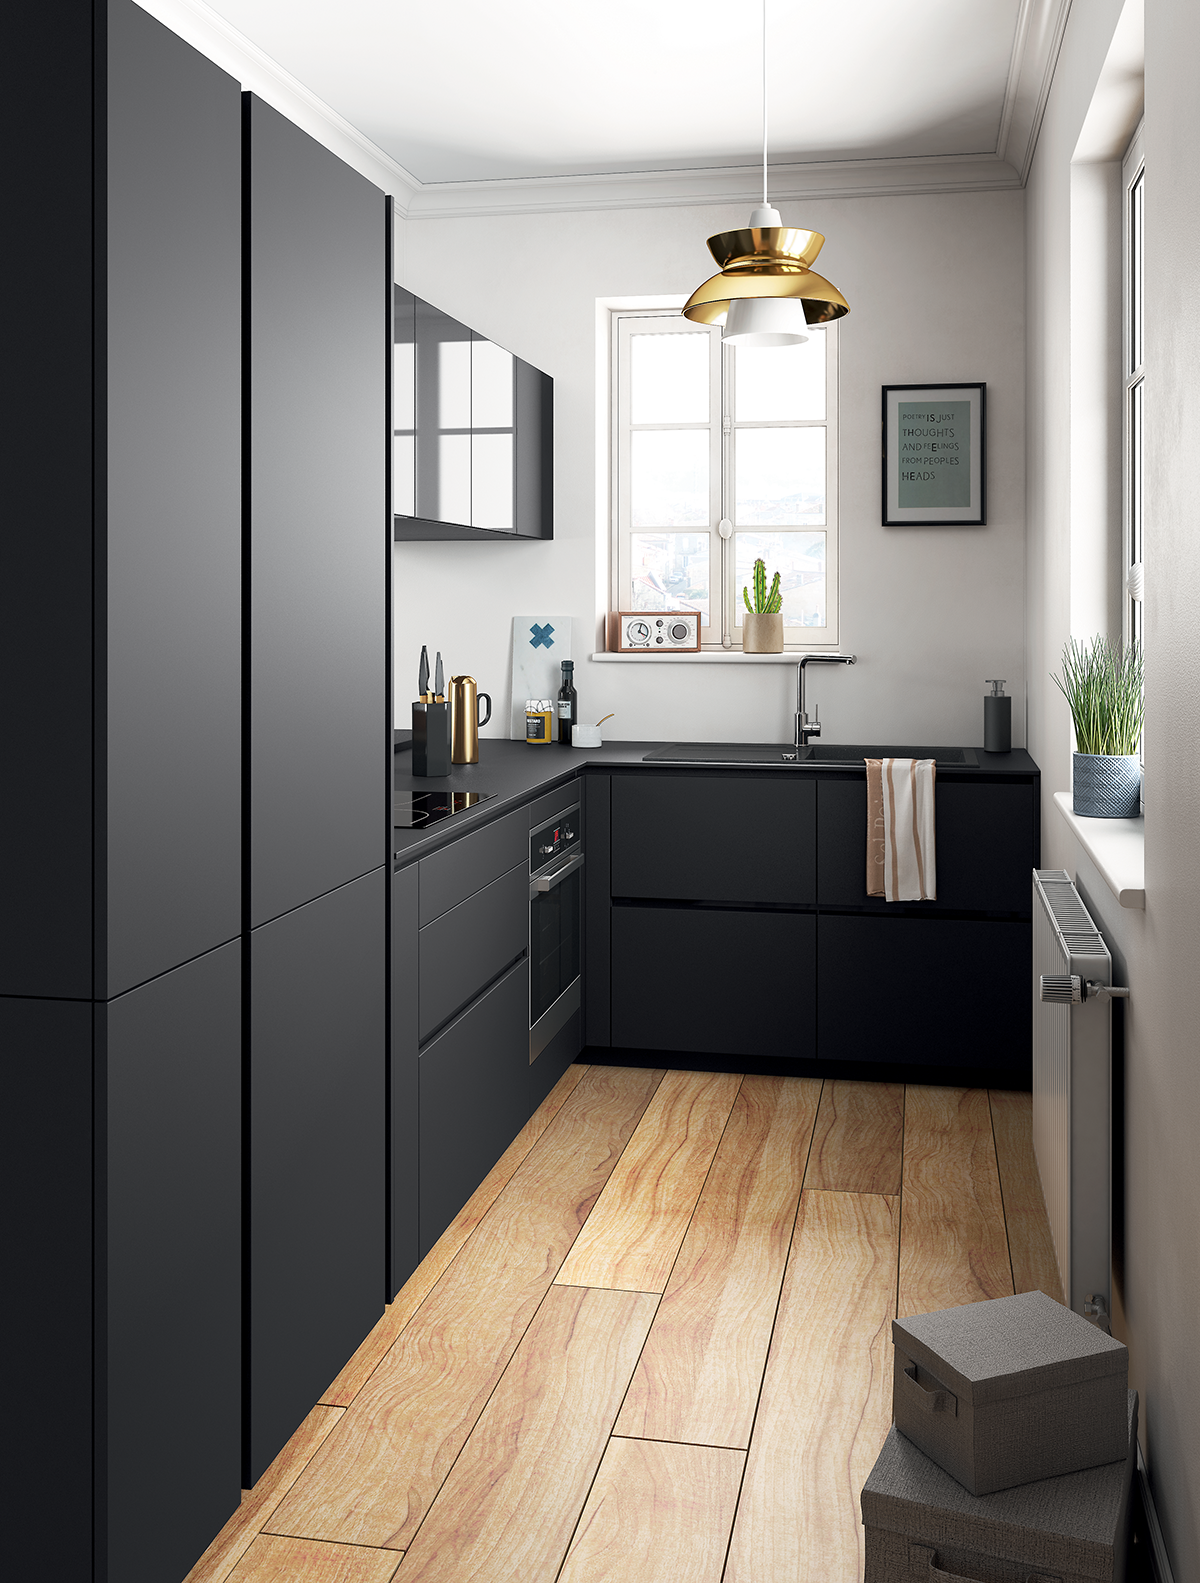 Black Design For Kitchen Modèles De Cuisines Lovely Spaces Black Kitchen Cabinets Small